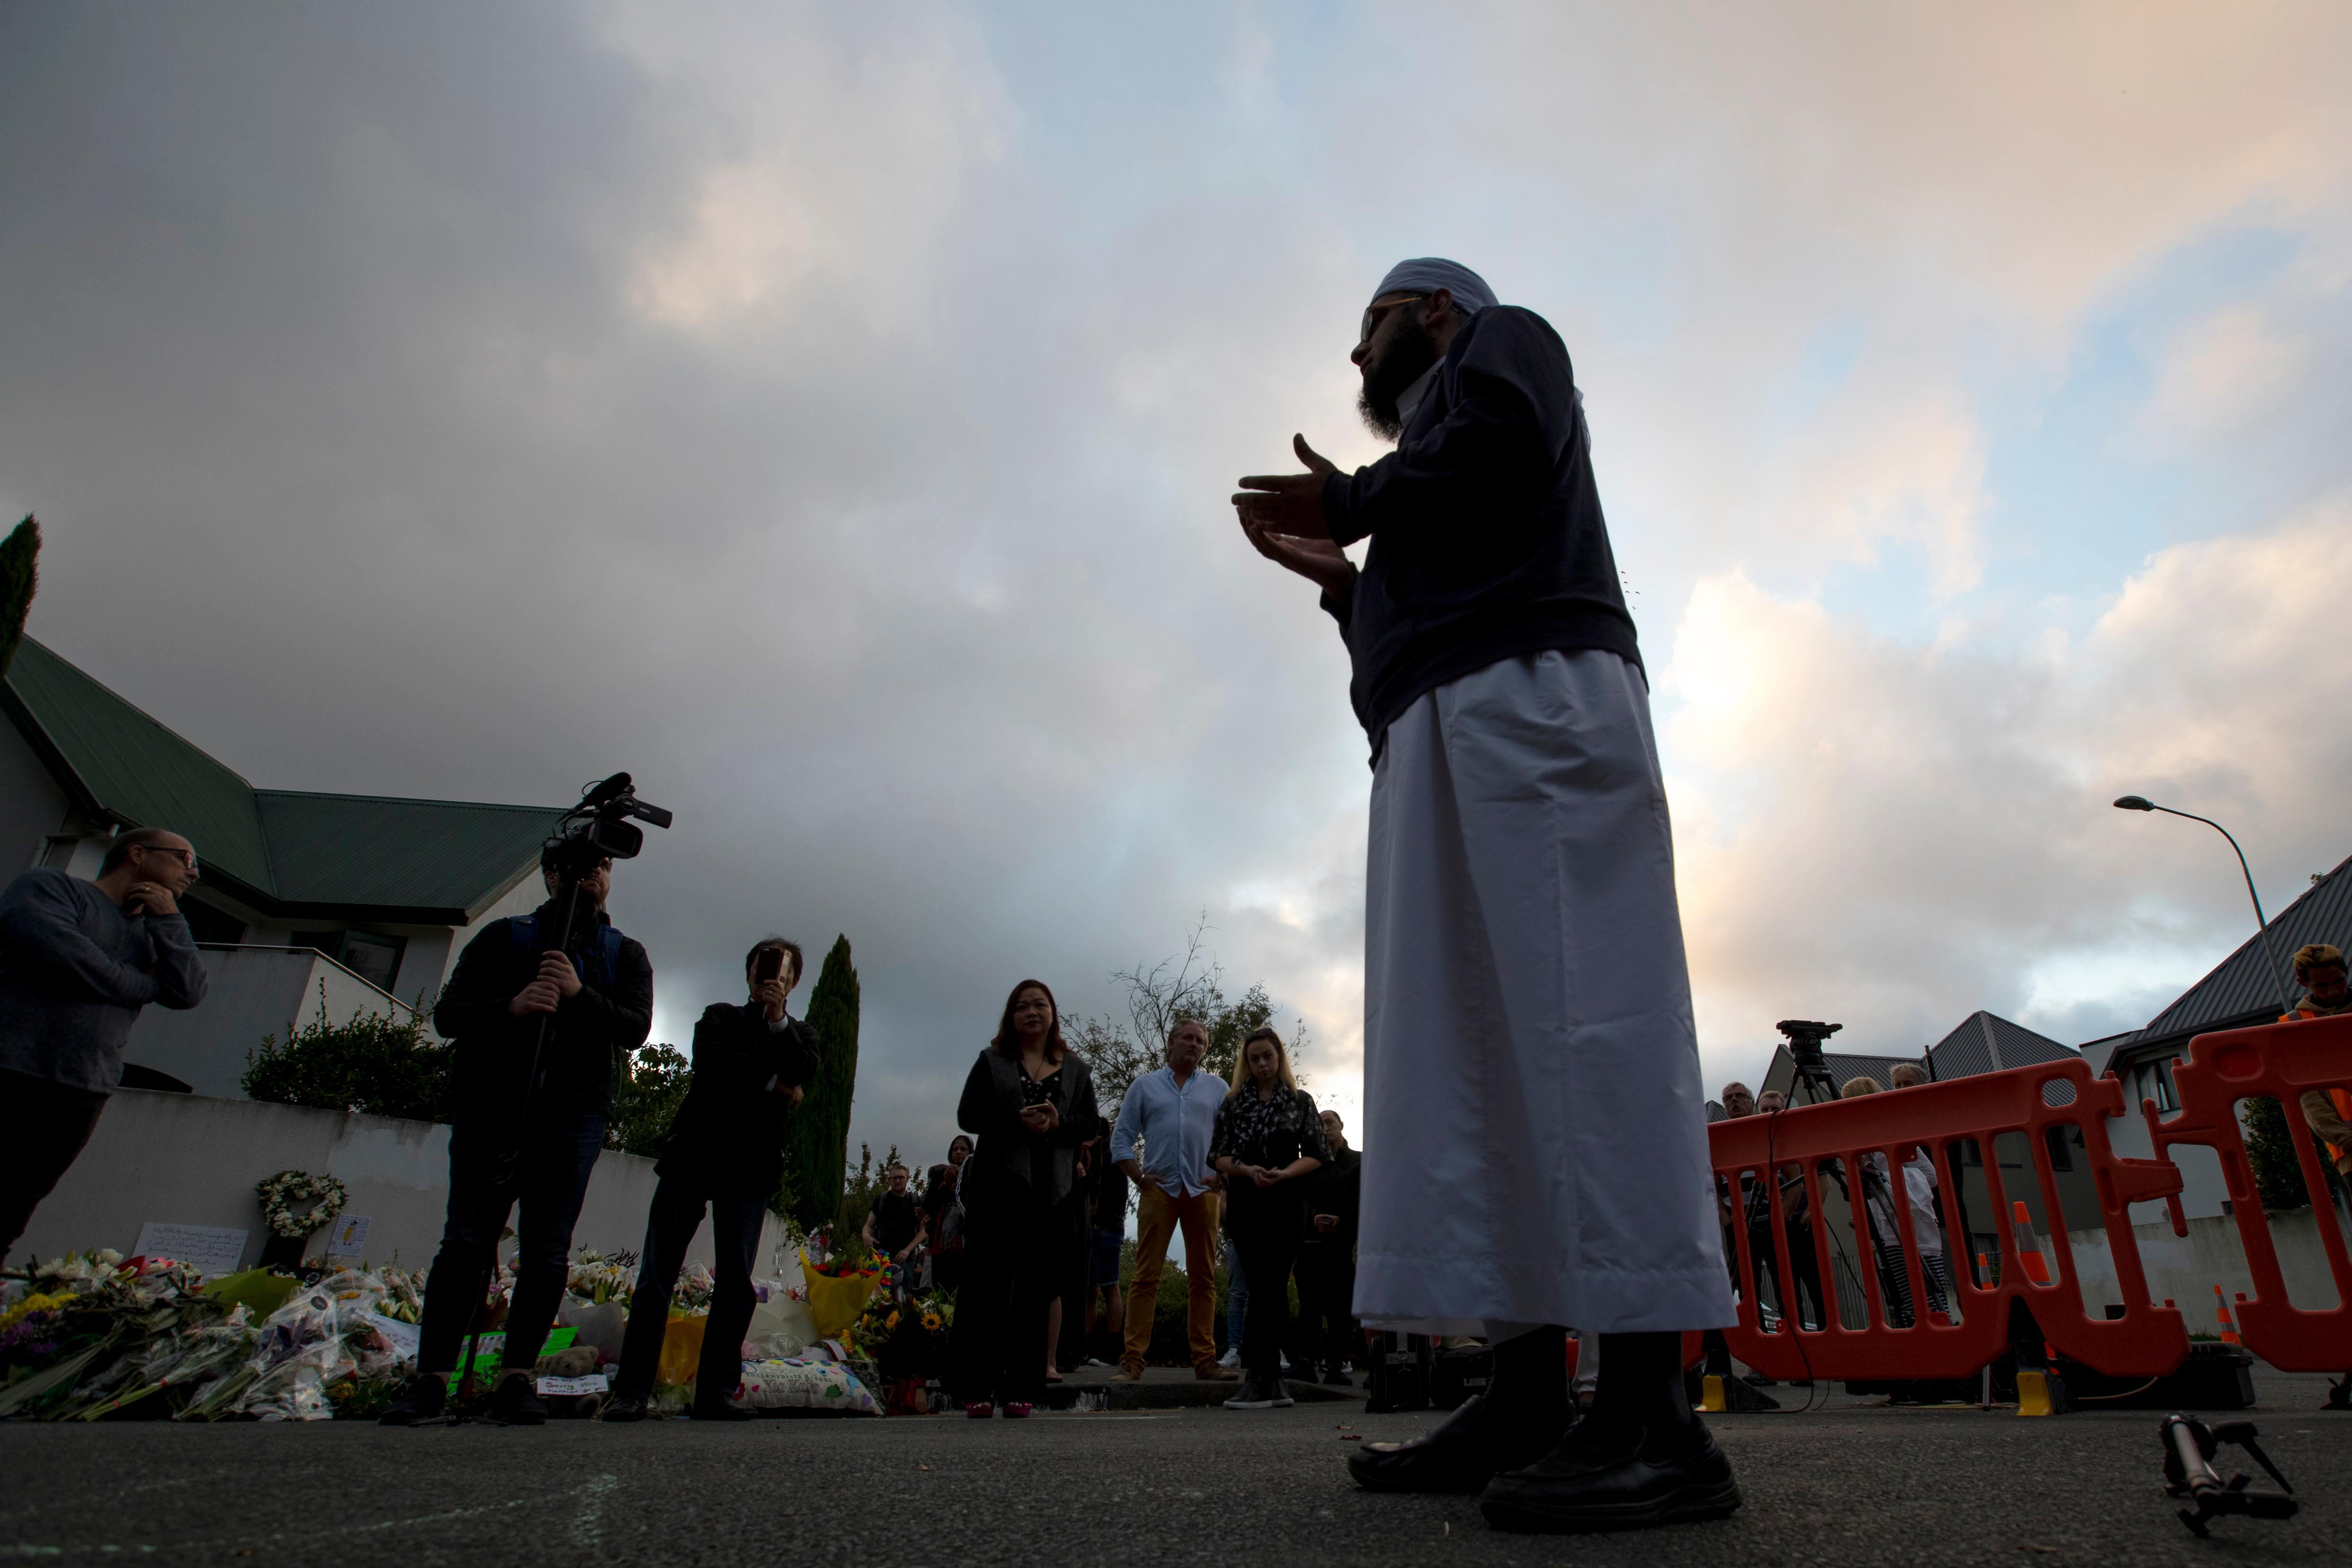 A Muslim offers prayer near the main road to the Al Noor mosque in Christchurch, New Zealand, Tuesday, March 19, 2019. Streets near the hospital that had been closed for four days reopened to traffic as relatives and friends of the victims of last week's mass shootings continued to stream in from around the world. (AP Photo/Vincent Thian)